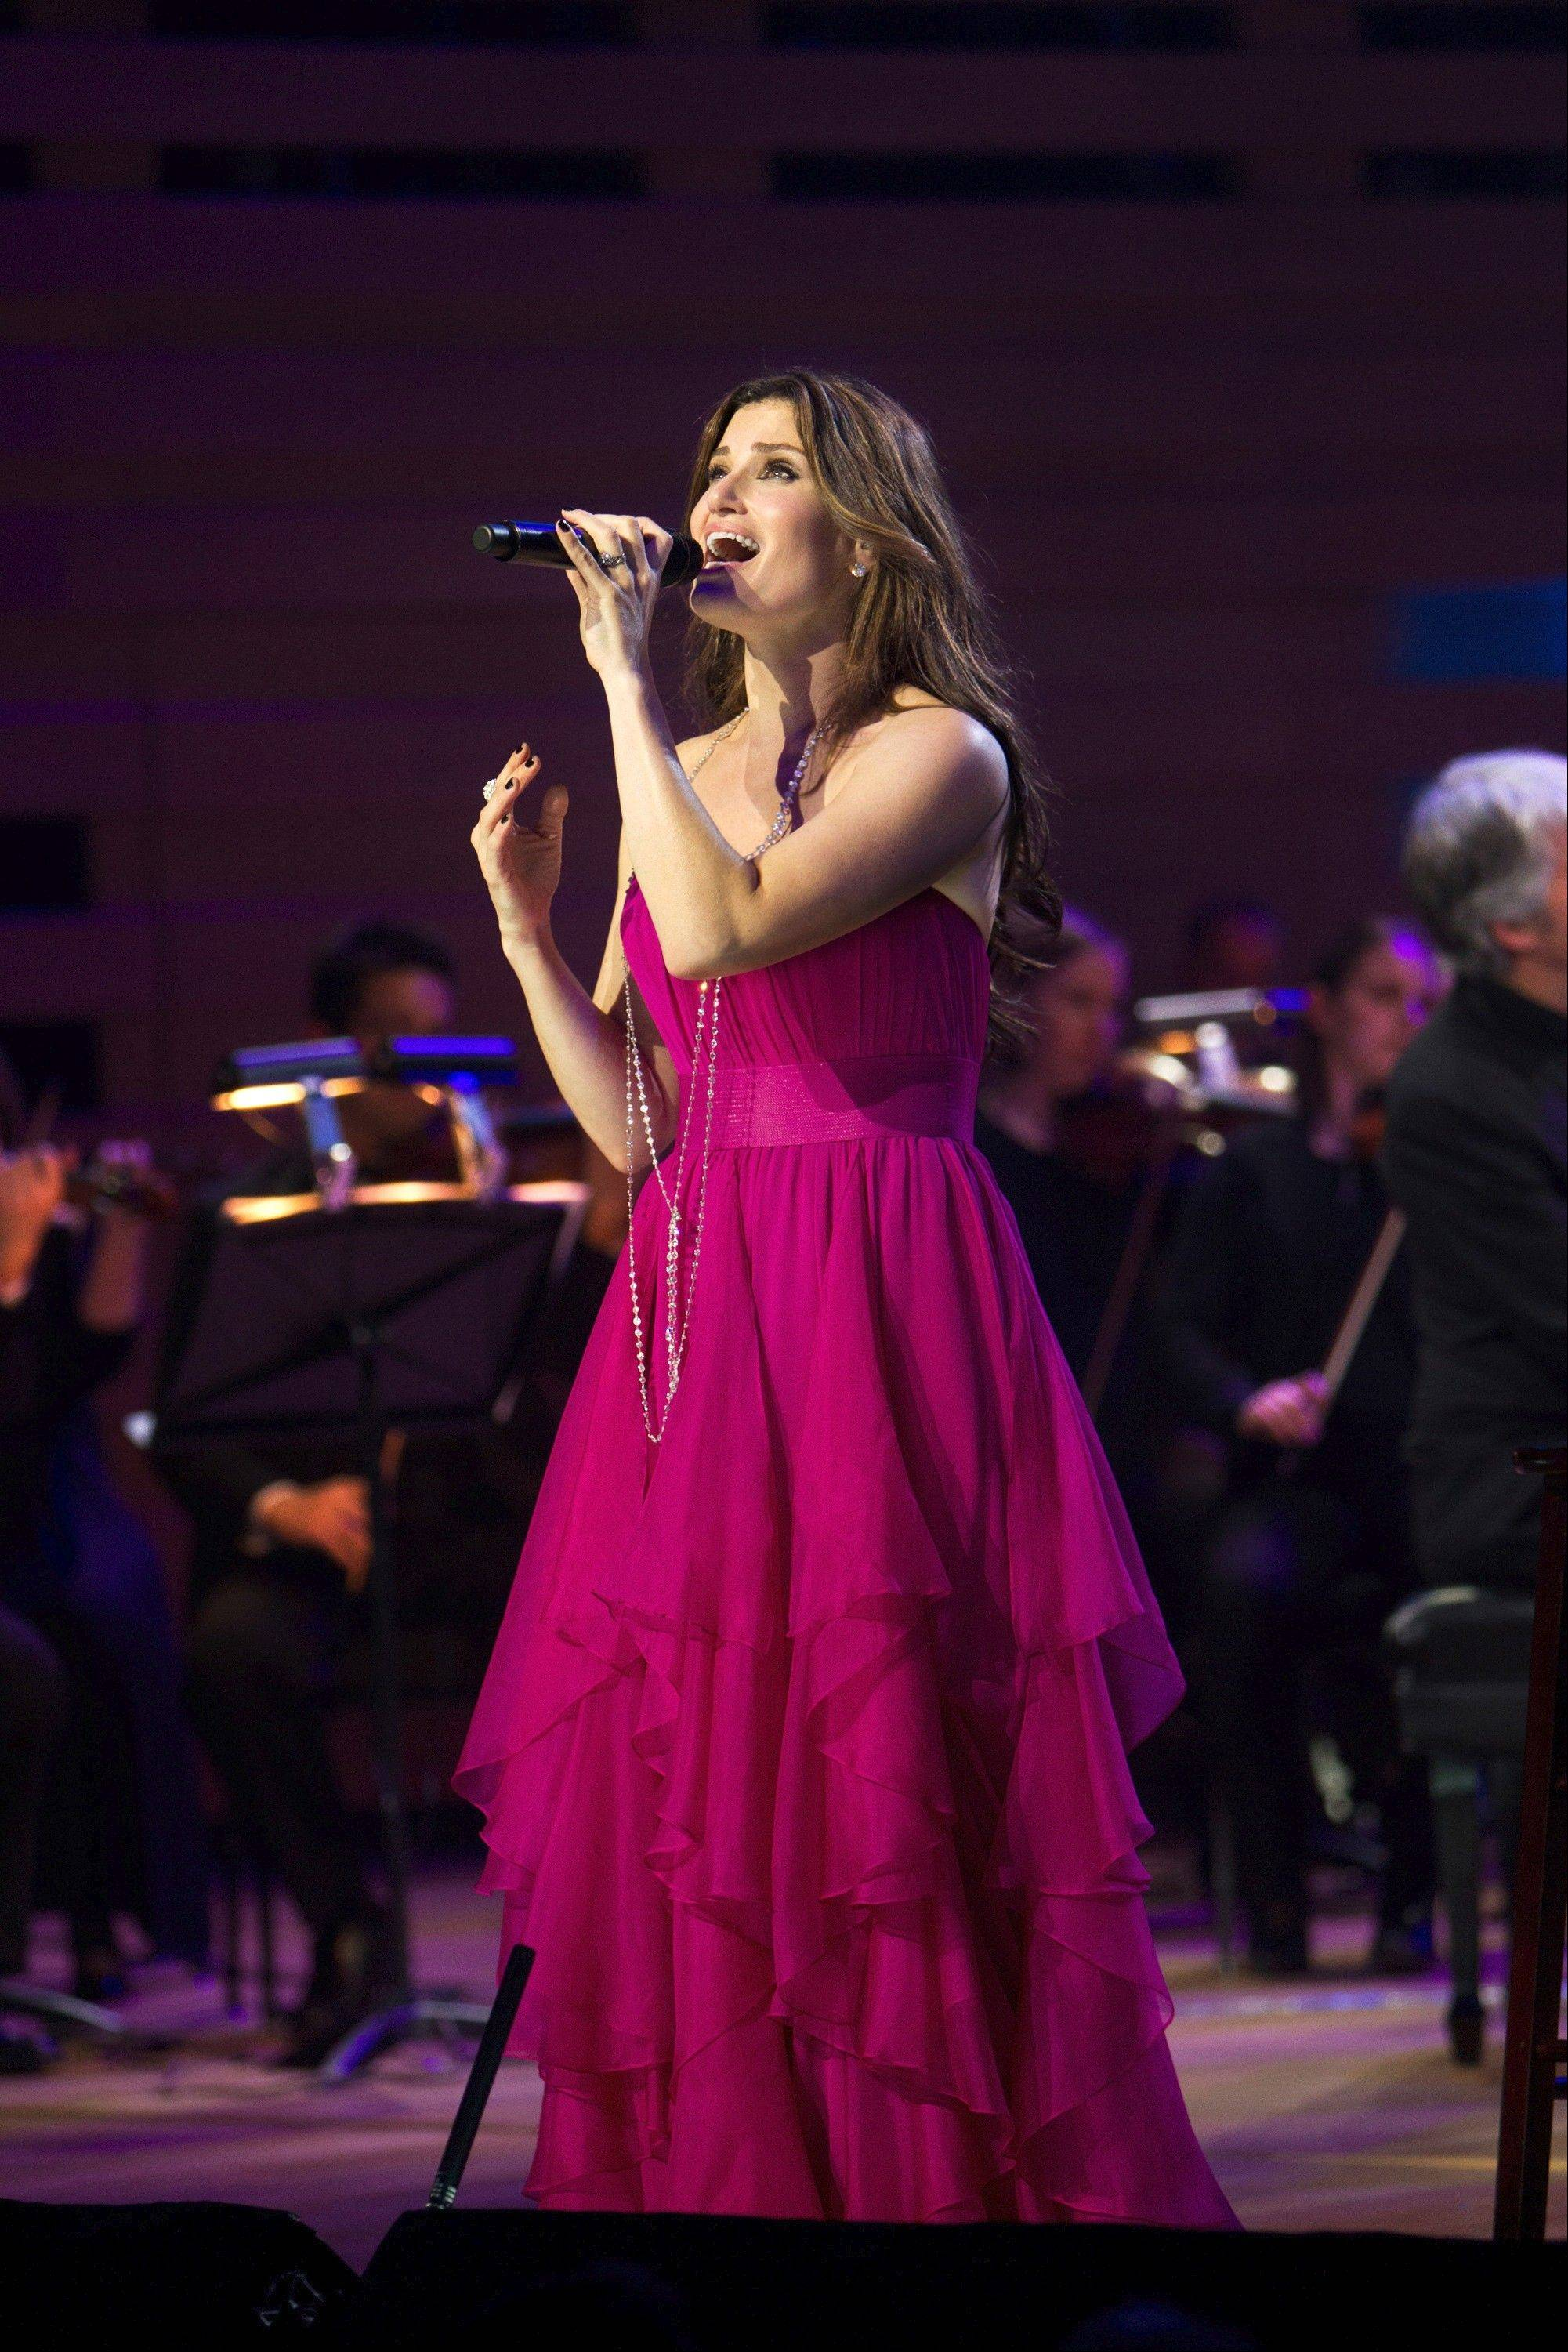 Idina Menzel sings with a 55-piece orchestra at RiverEdge Park in Aurora.